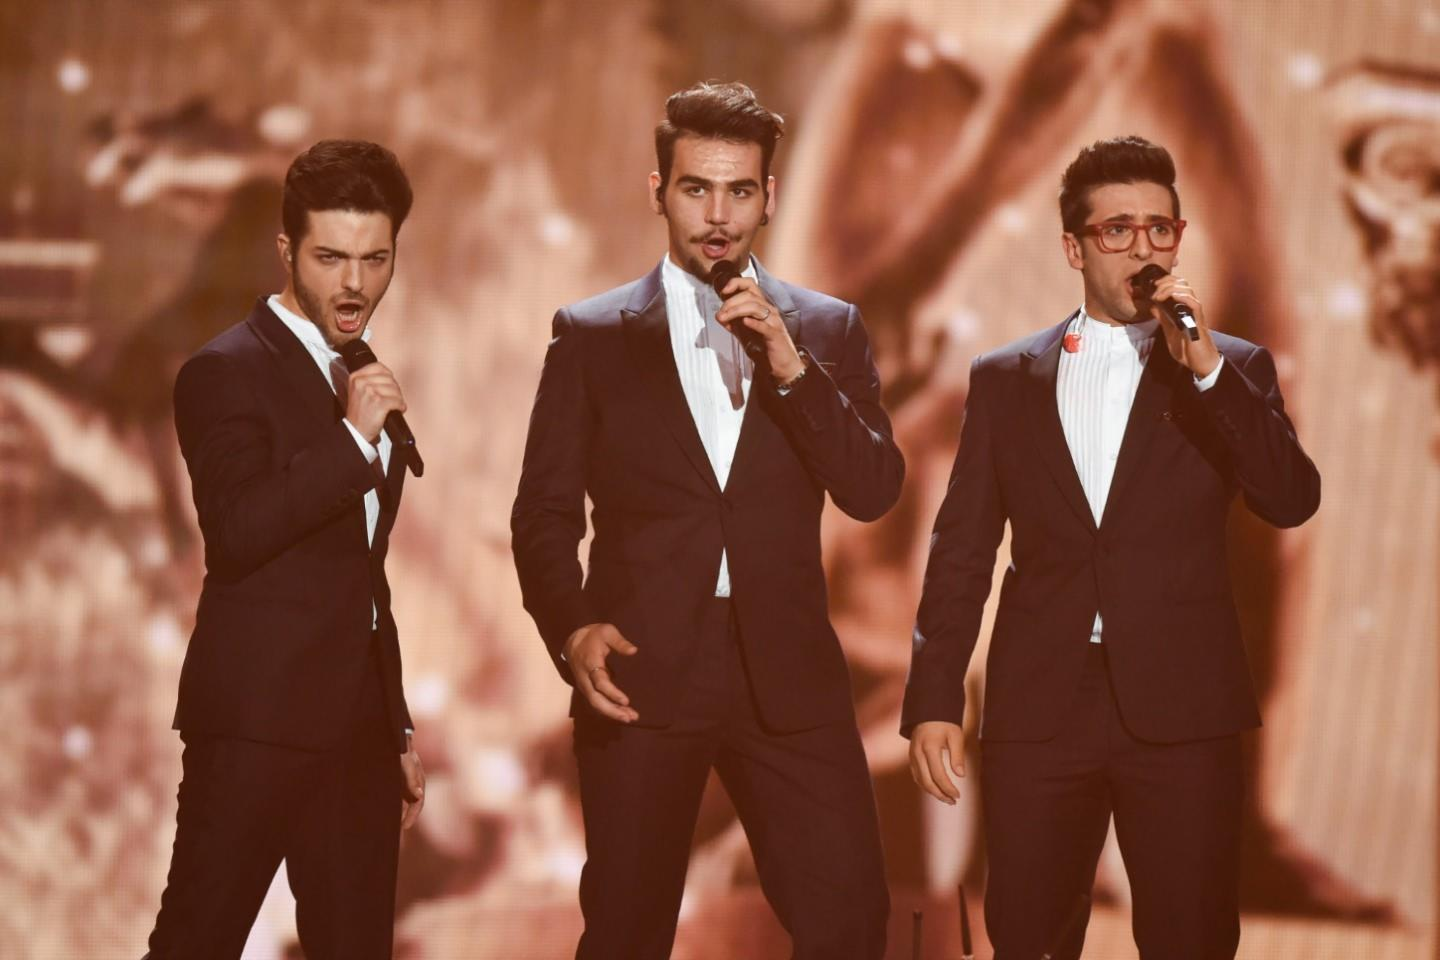 Il Volo Tour 2020.Il Volo Tour Dates 2020 And Concert Tickets Viagogo